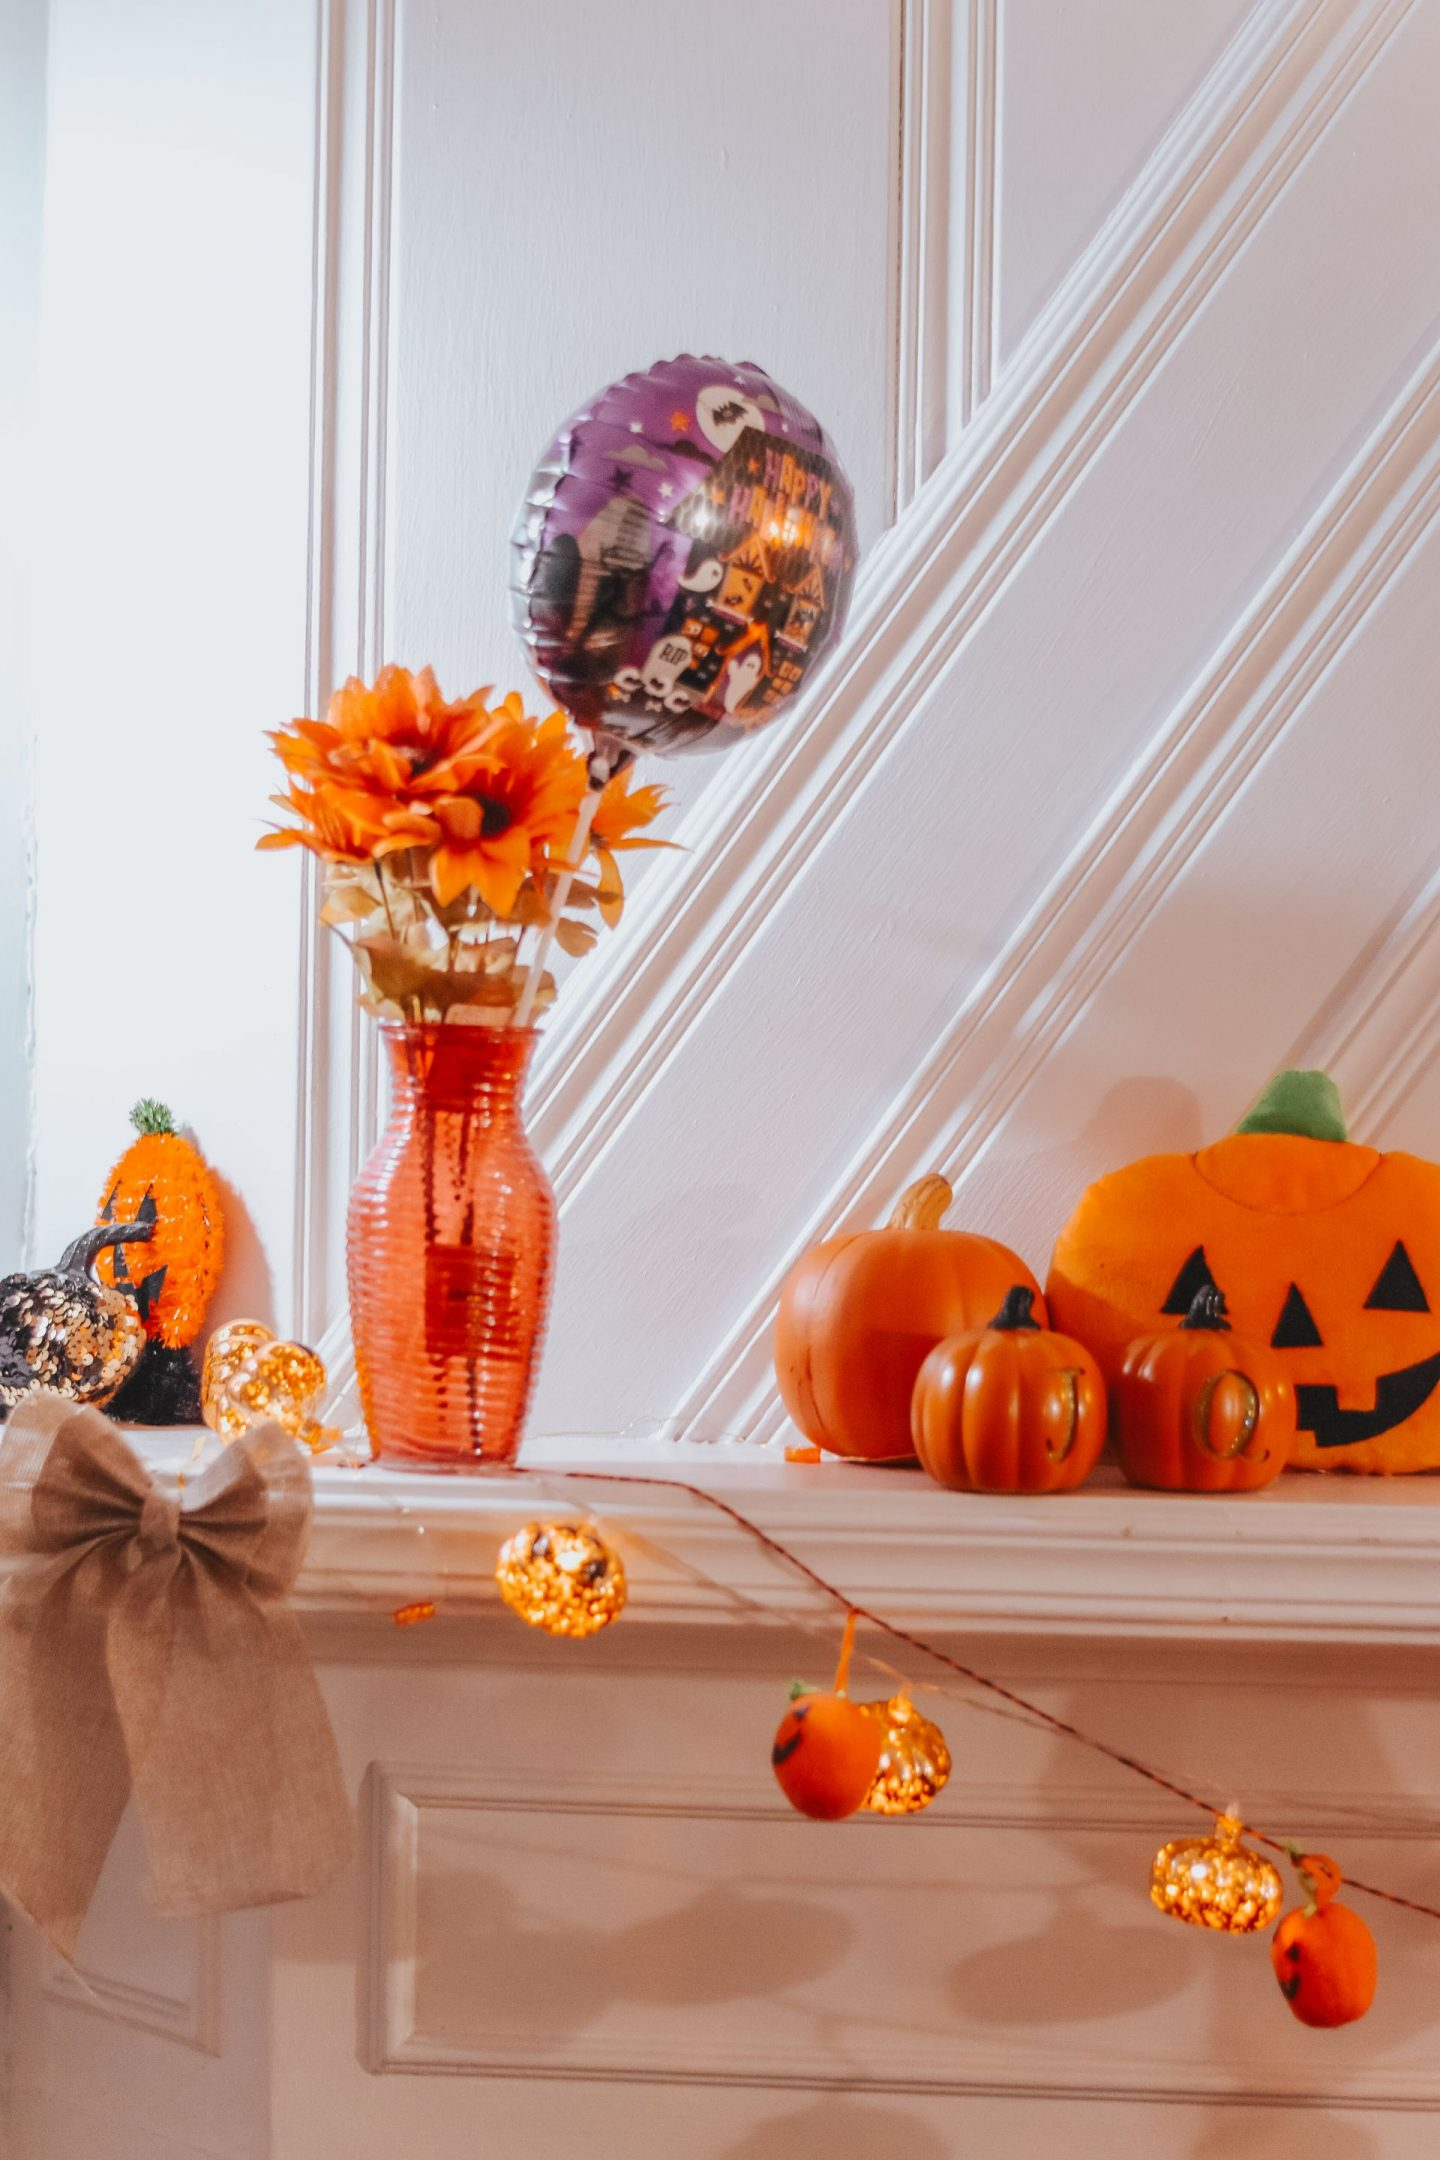 How I Decorated My Home For Fall on a Budget